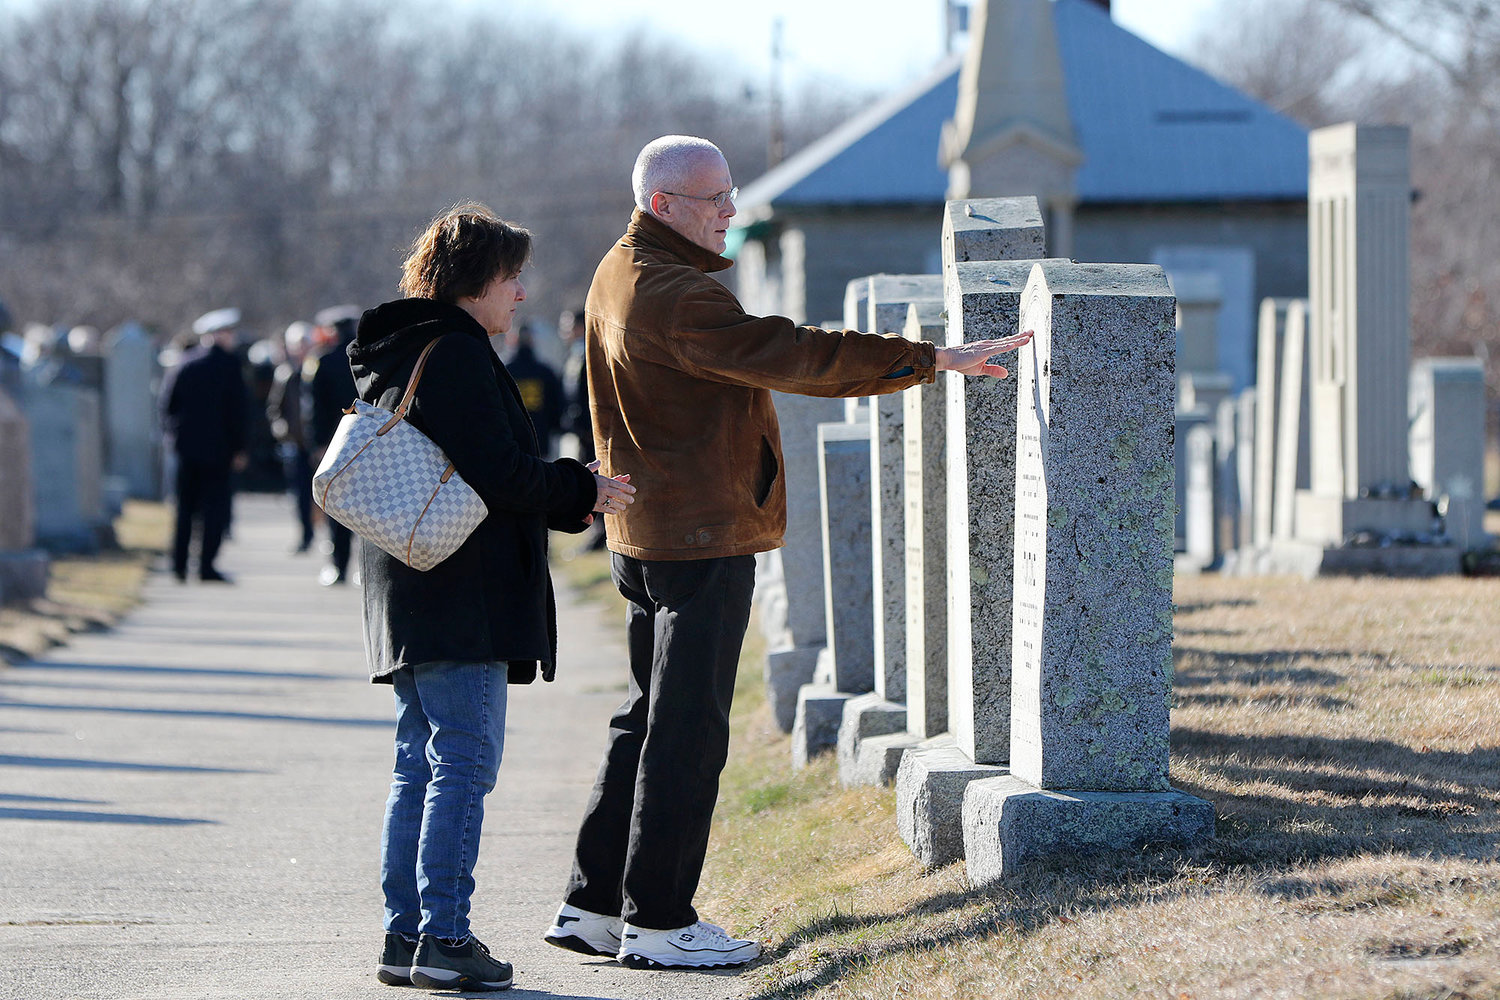 Cathy Horvitz, of Westwood, MA, left, and Ken Rapisa, of Fall River, right, look over the grave stones in the cemetery.   They did not know each other before this day.